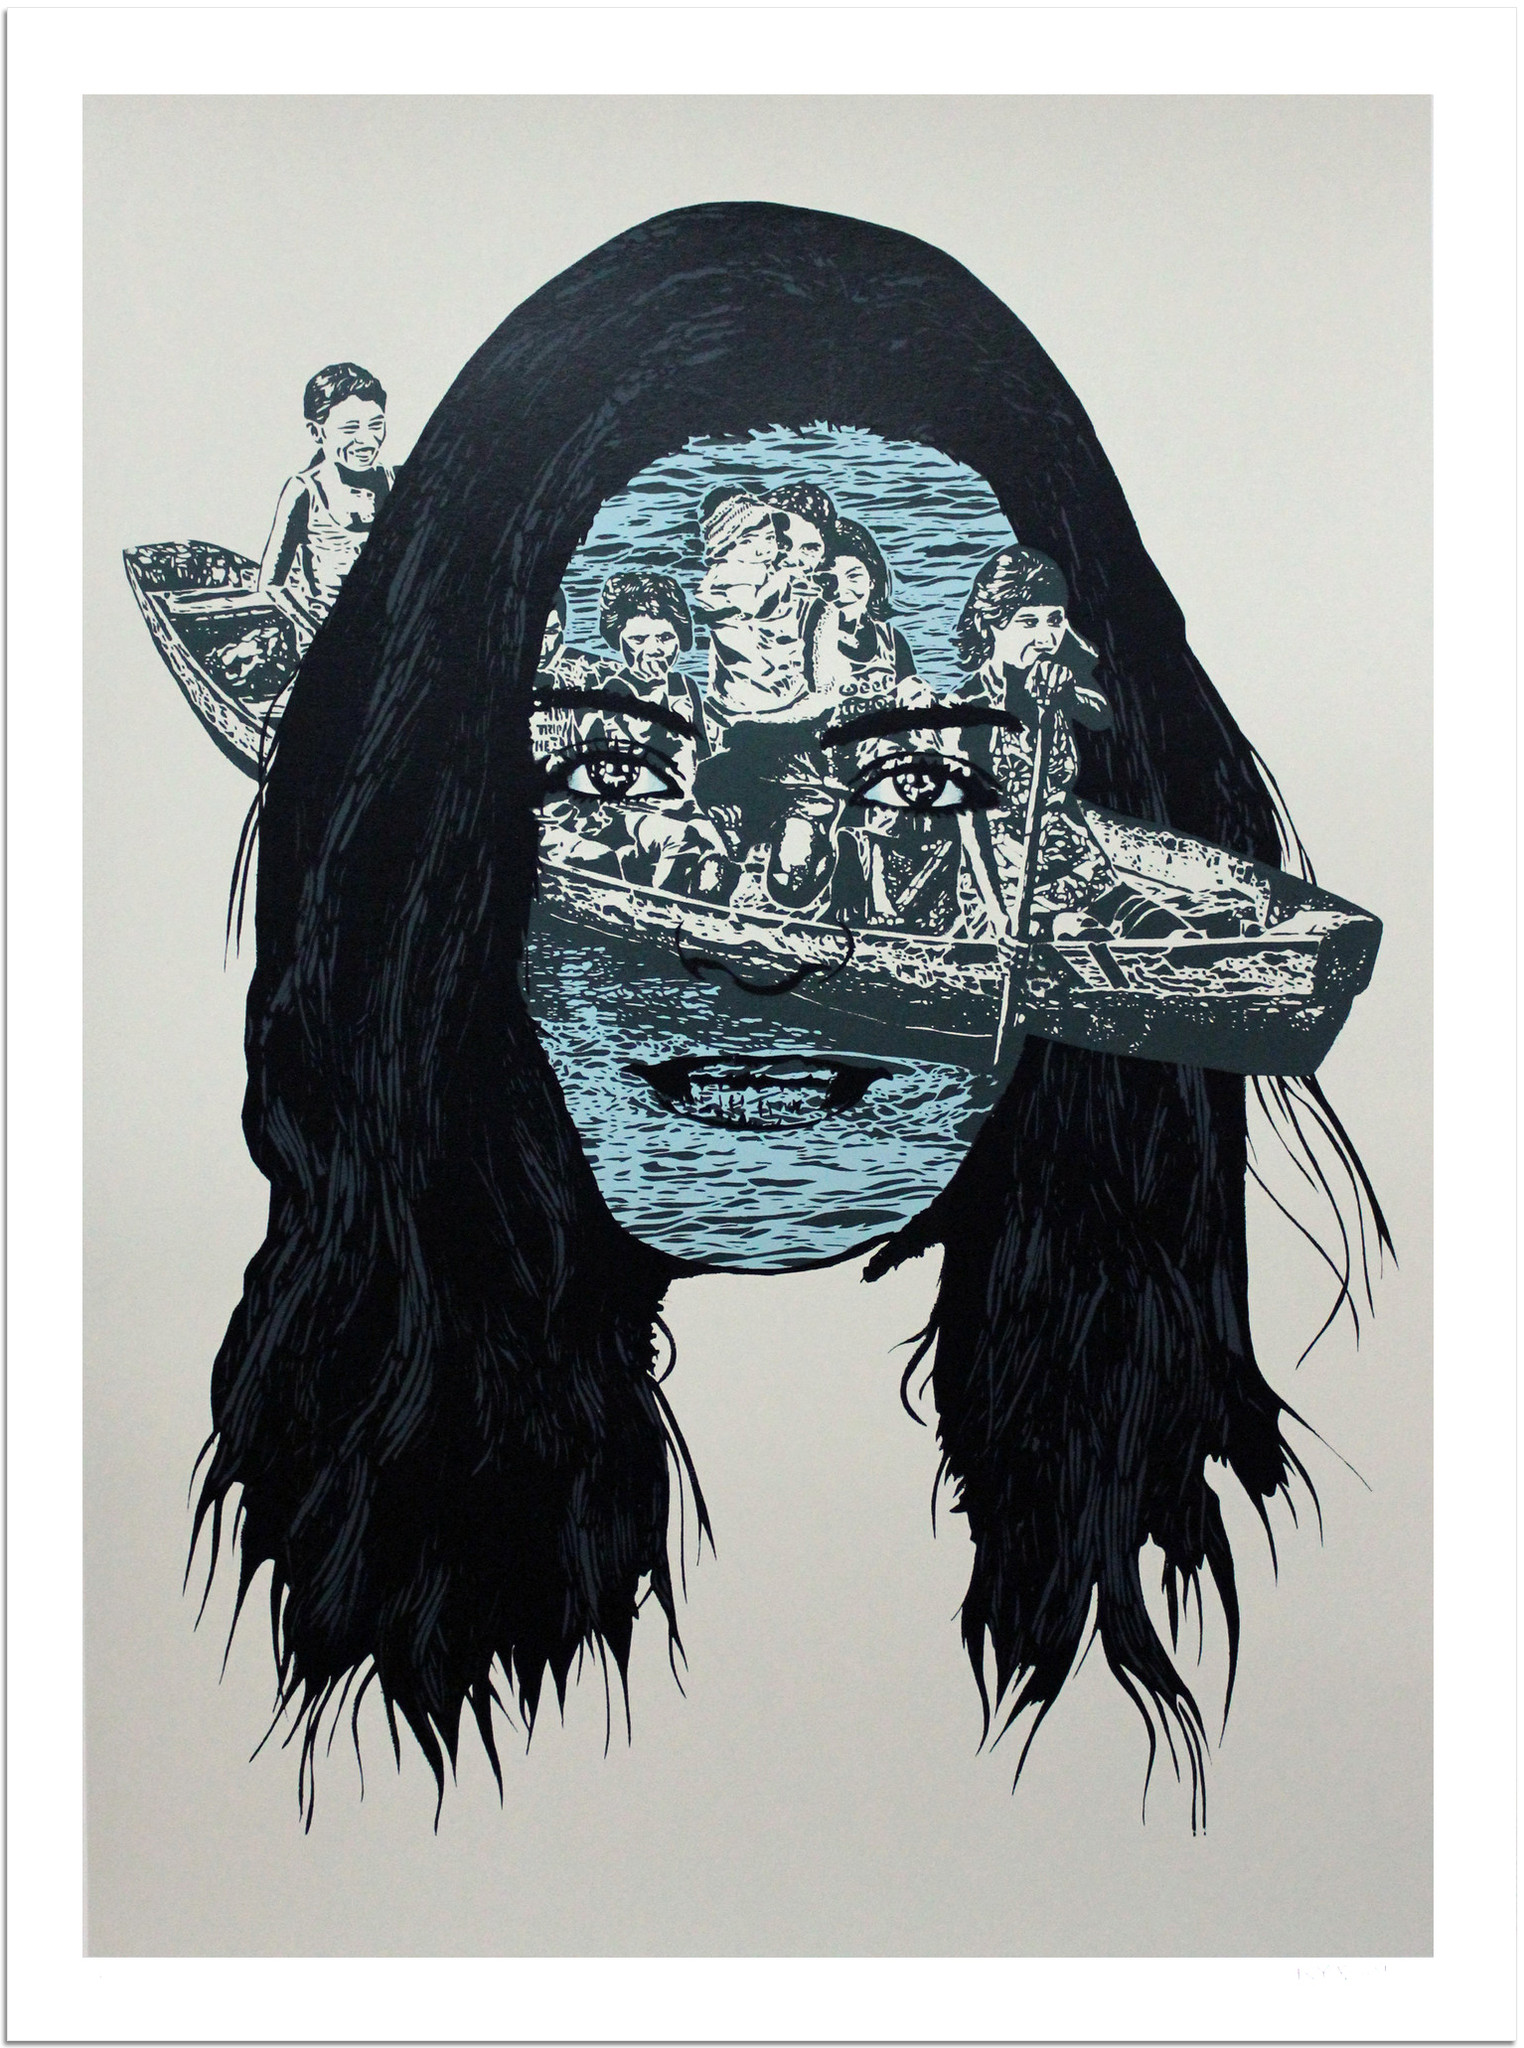 """Voyage"" by Icy & Sot.  18"" x 24"" 5-color Screenprint.  Ed of 50 S/N.  $275"